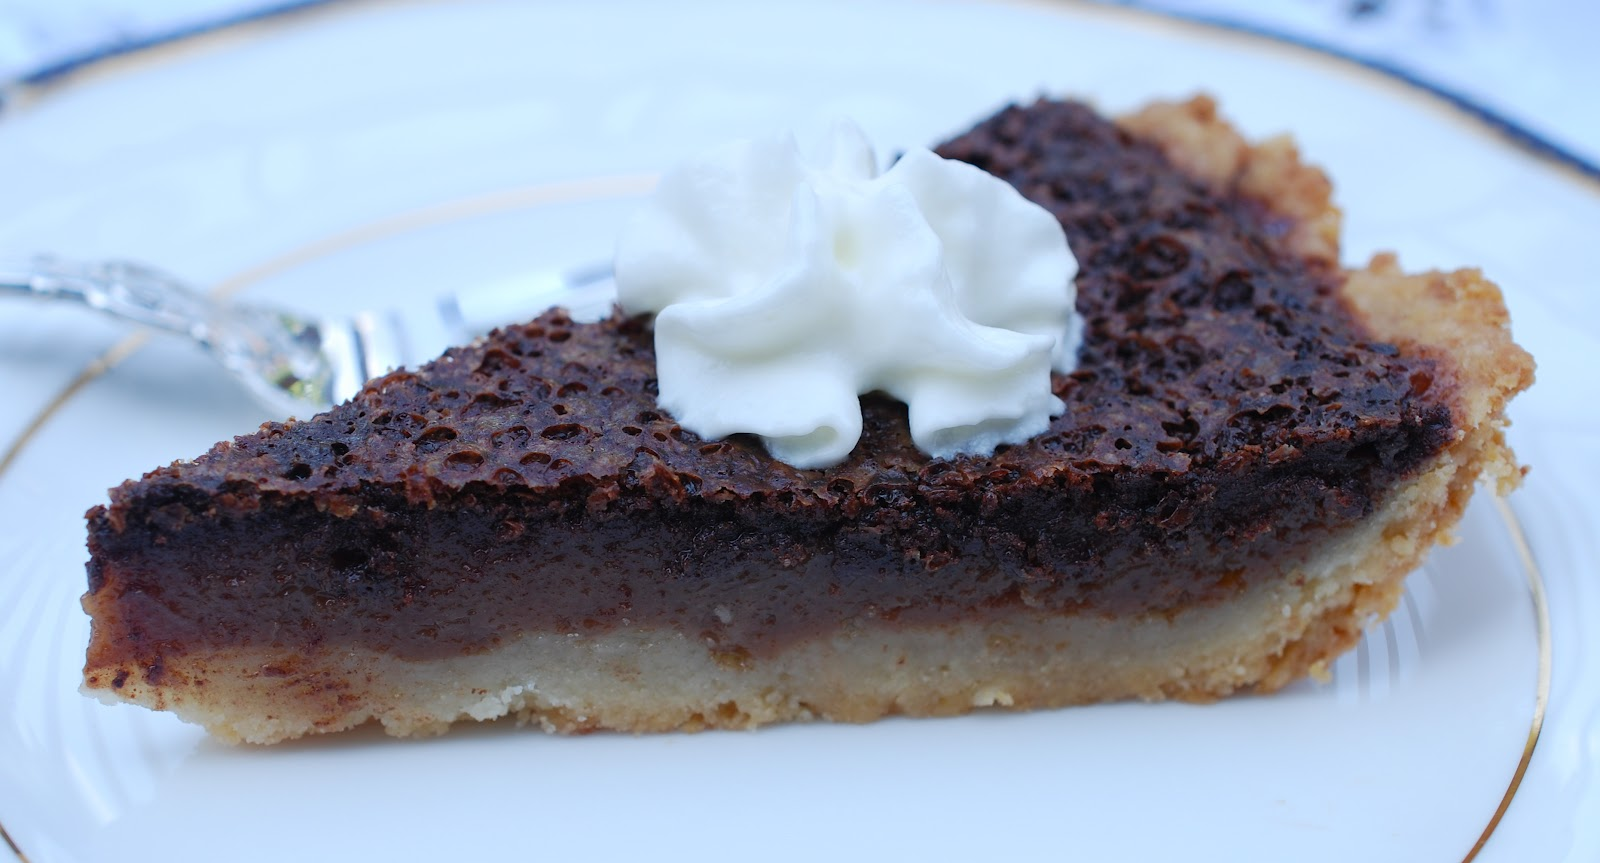 Minnie's Chocolate Pie from THE HELP - Amanda Jane Brown